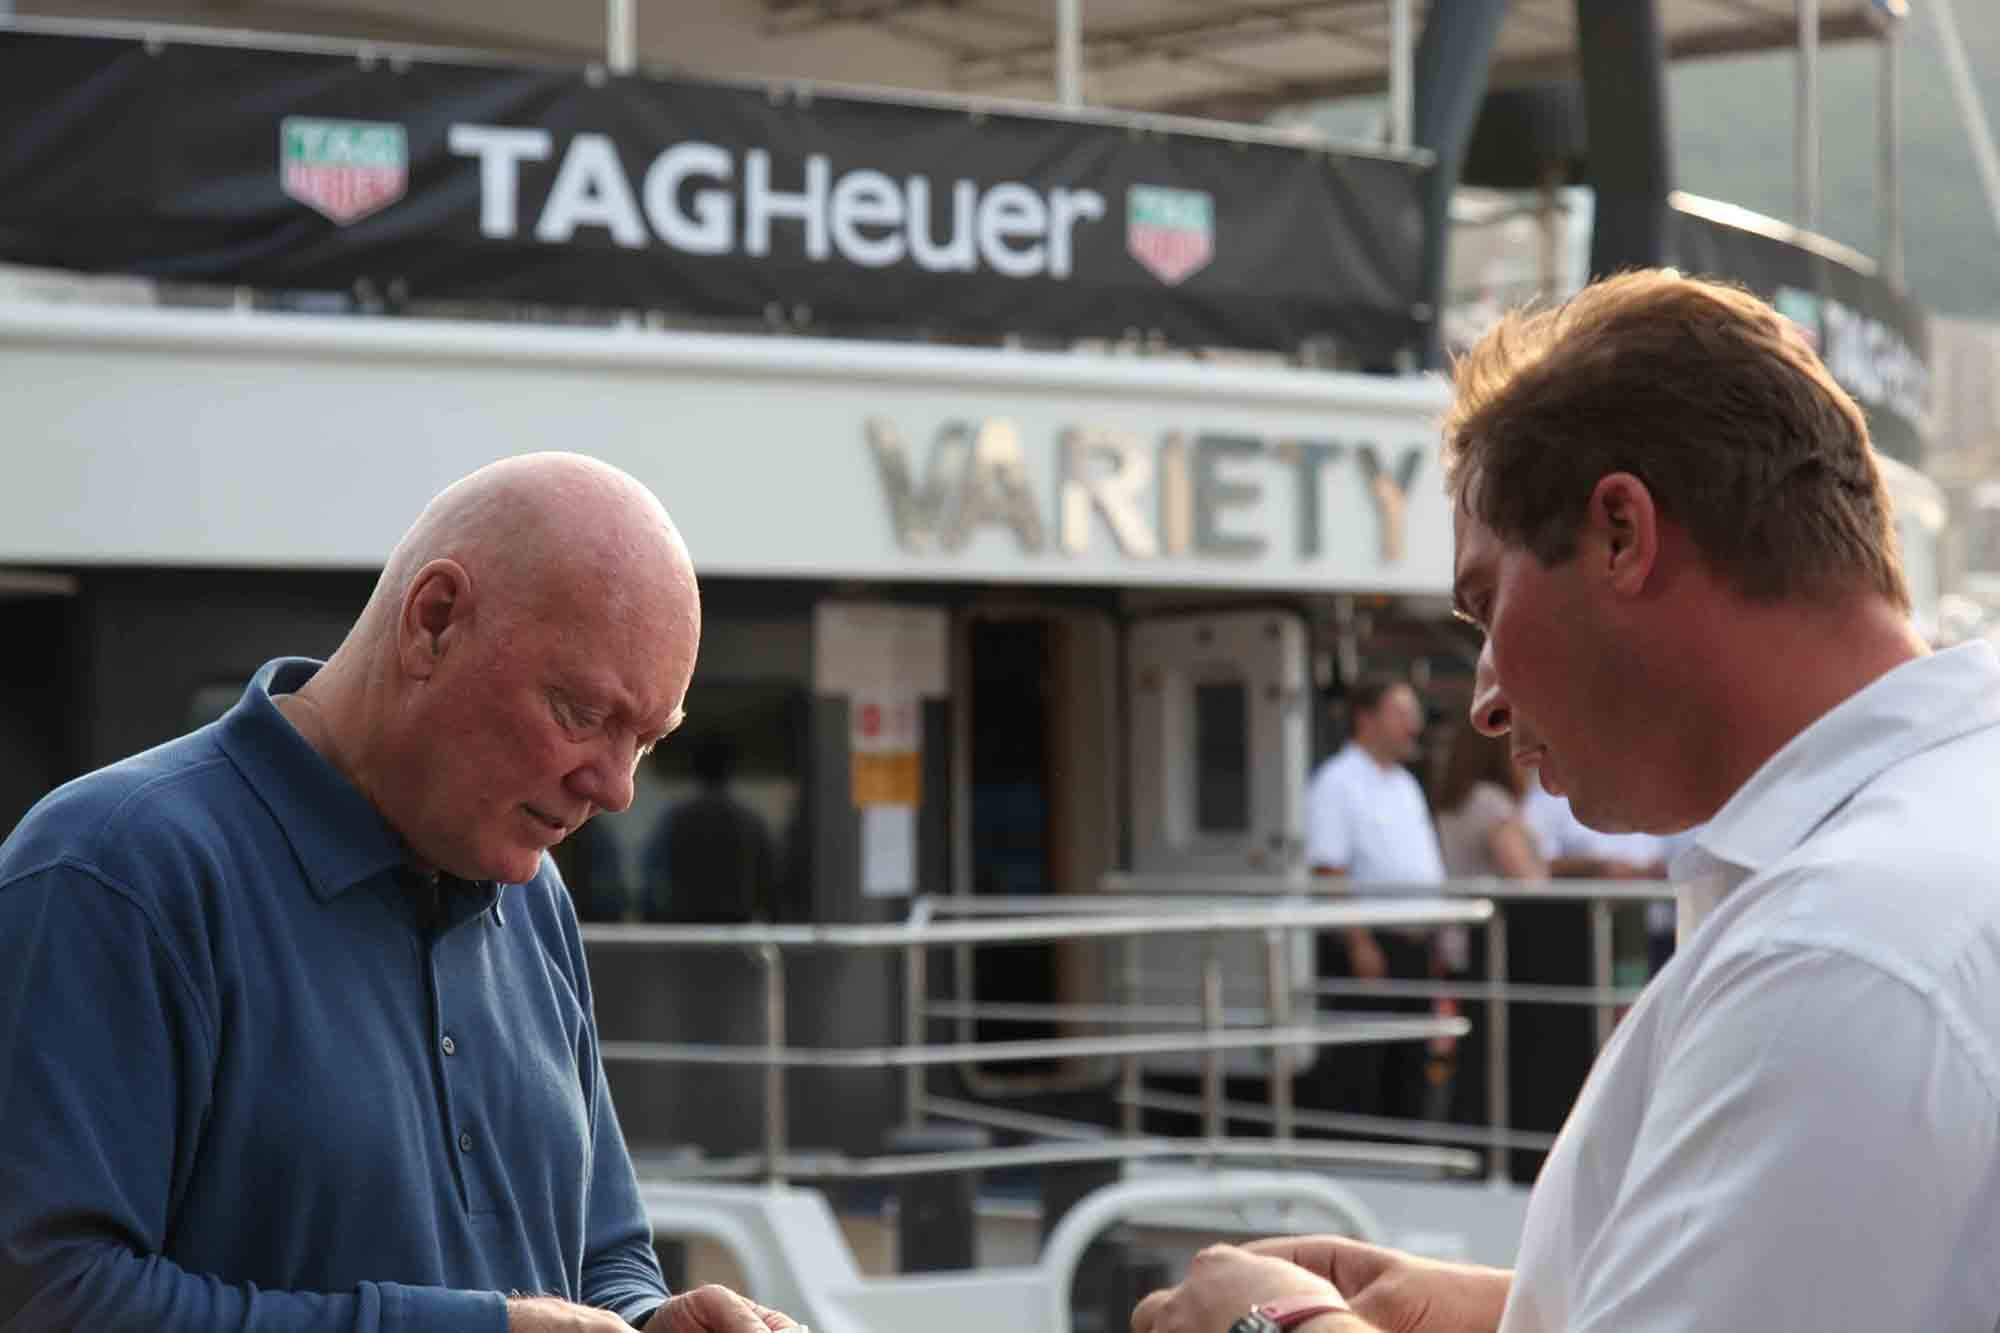 Mr. Biver meeting Jean-Baptiste Trunde. Photo Report: Behind The Scenes At The Monaco Grand Prix 2016 With TAG Heuer CEO Jean-Claude Biver Photo Report: Behind The Scenes At The Monaco Grand Prix 2016 With TAG Heuer CEO Jean-Claude Biver 2